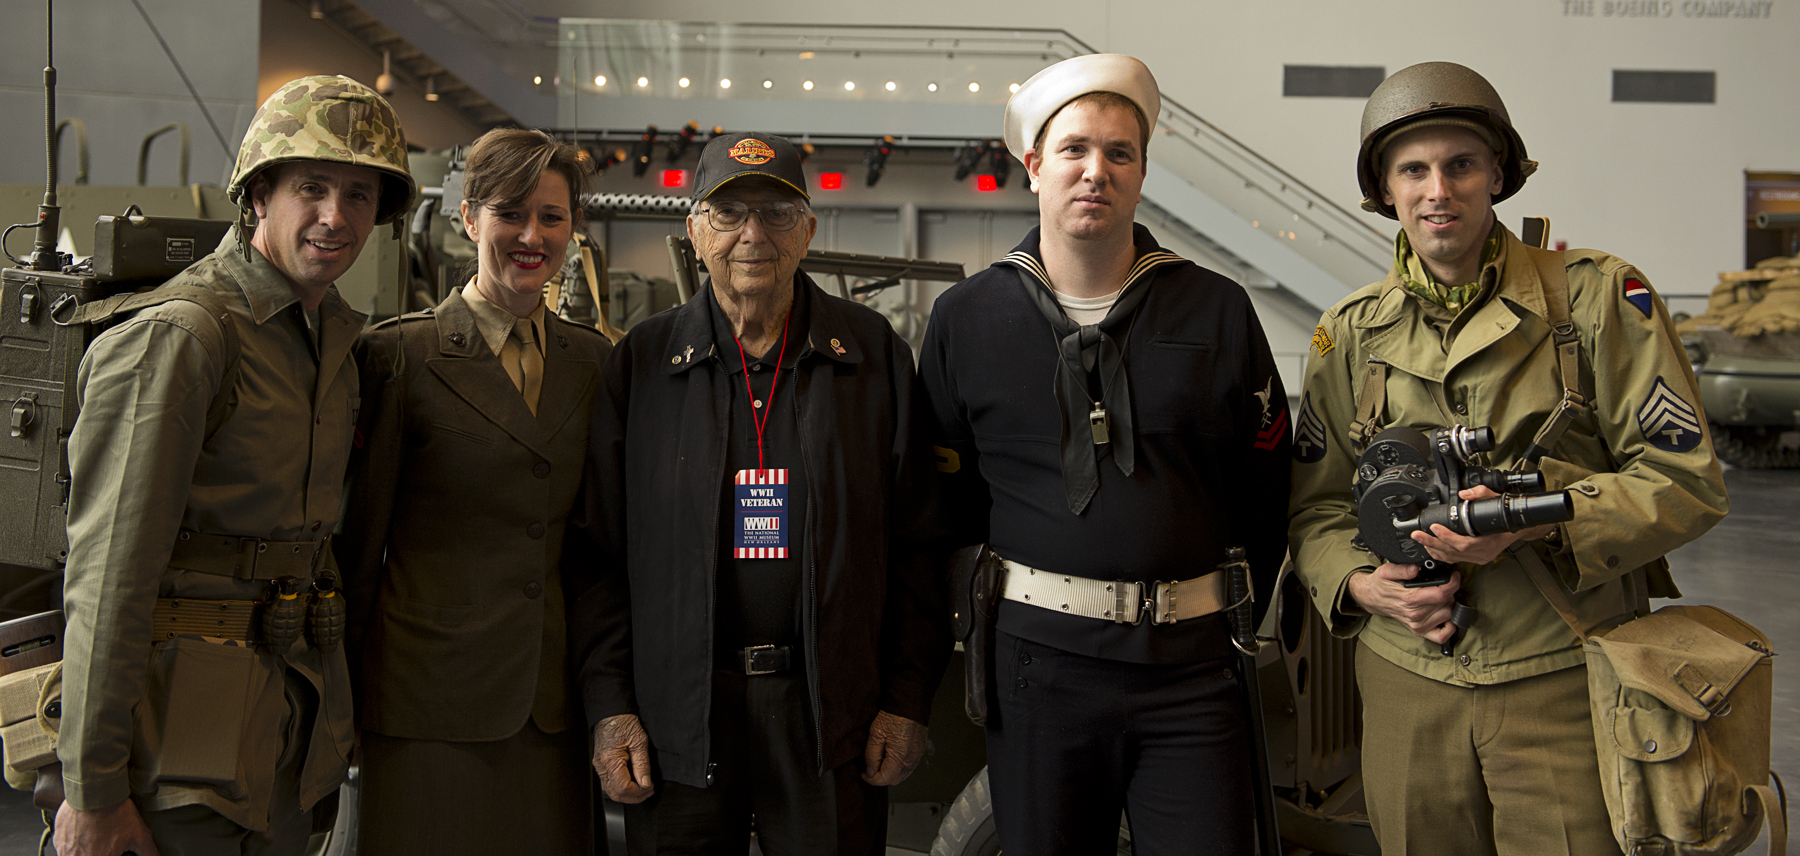 WWII Veteran and the Living Historians